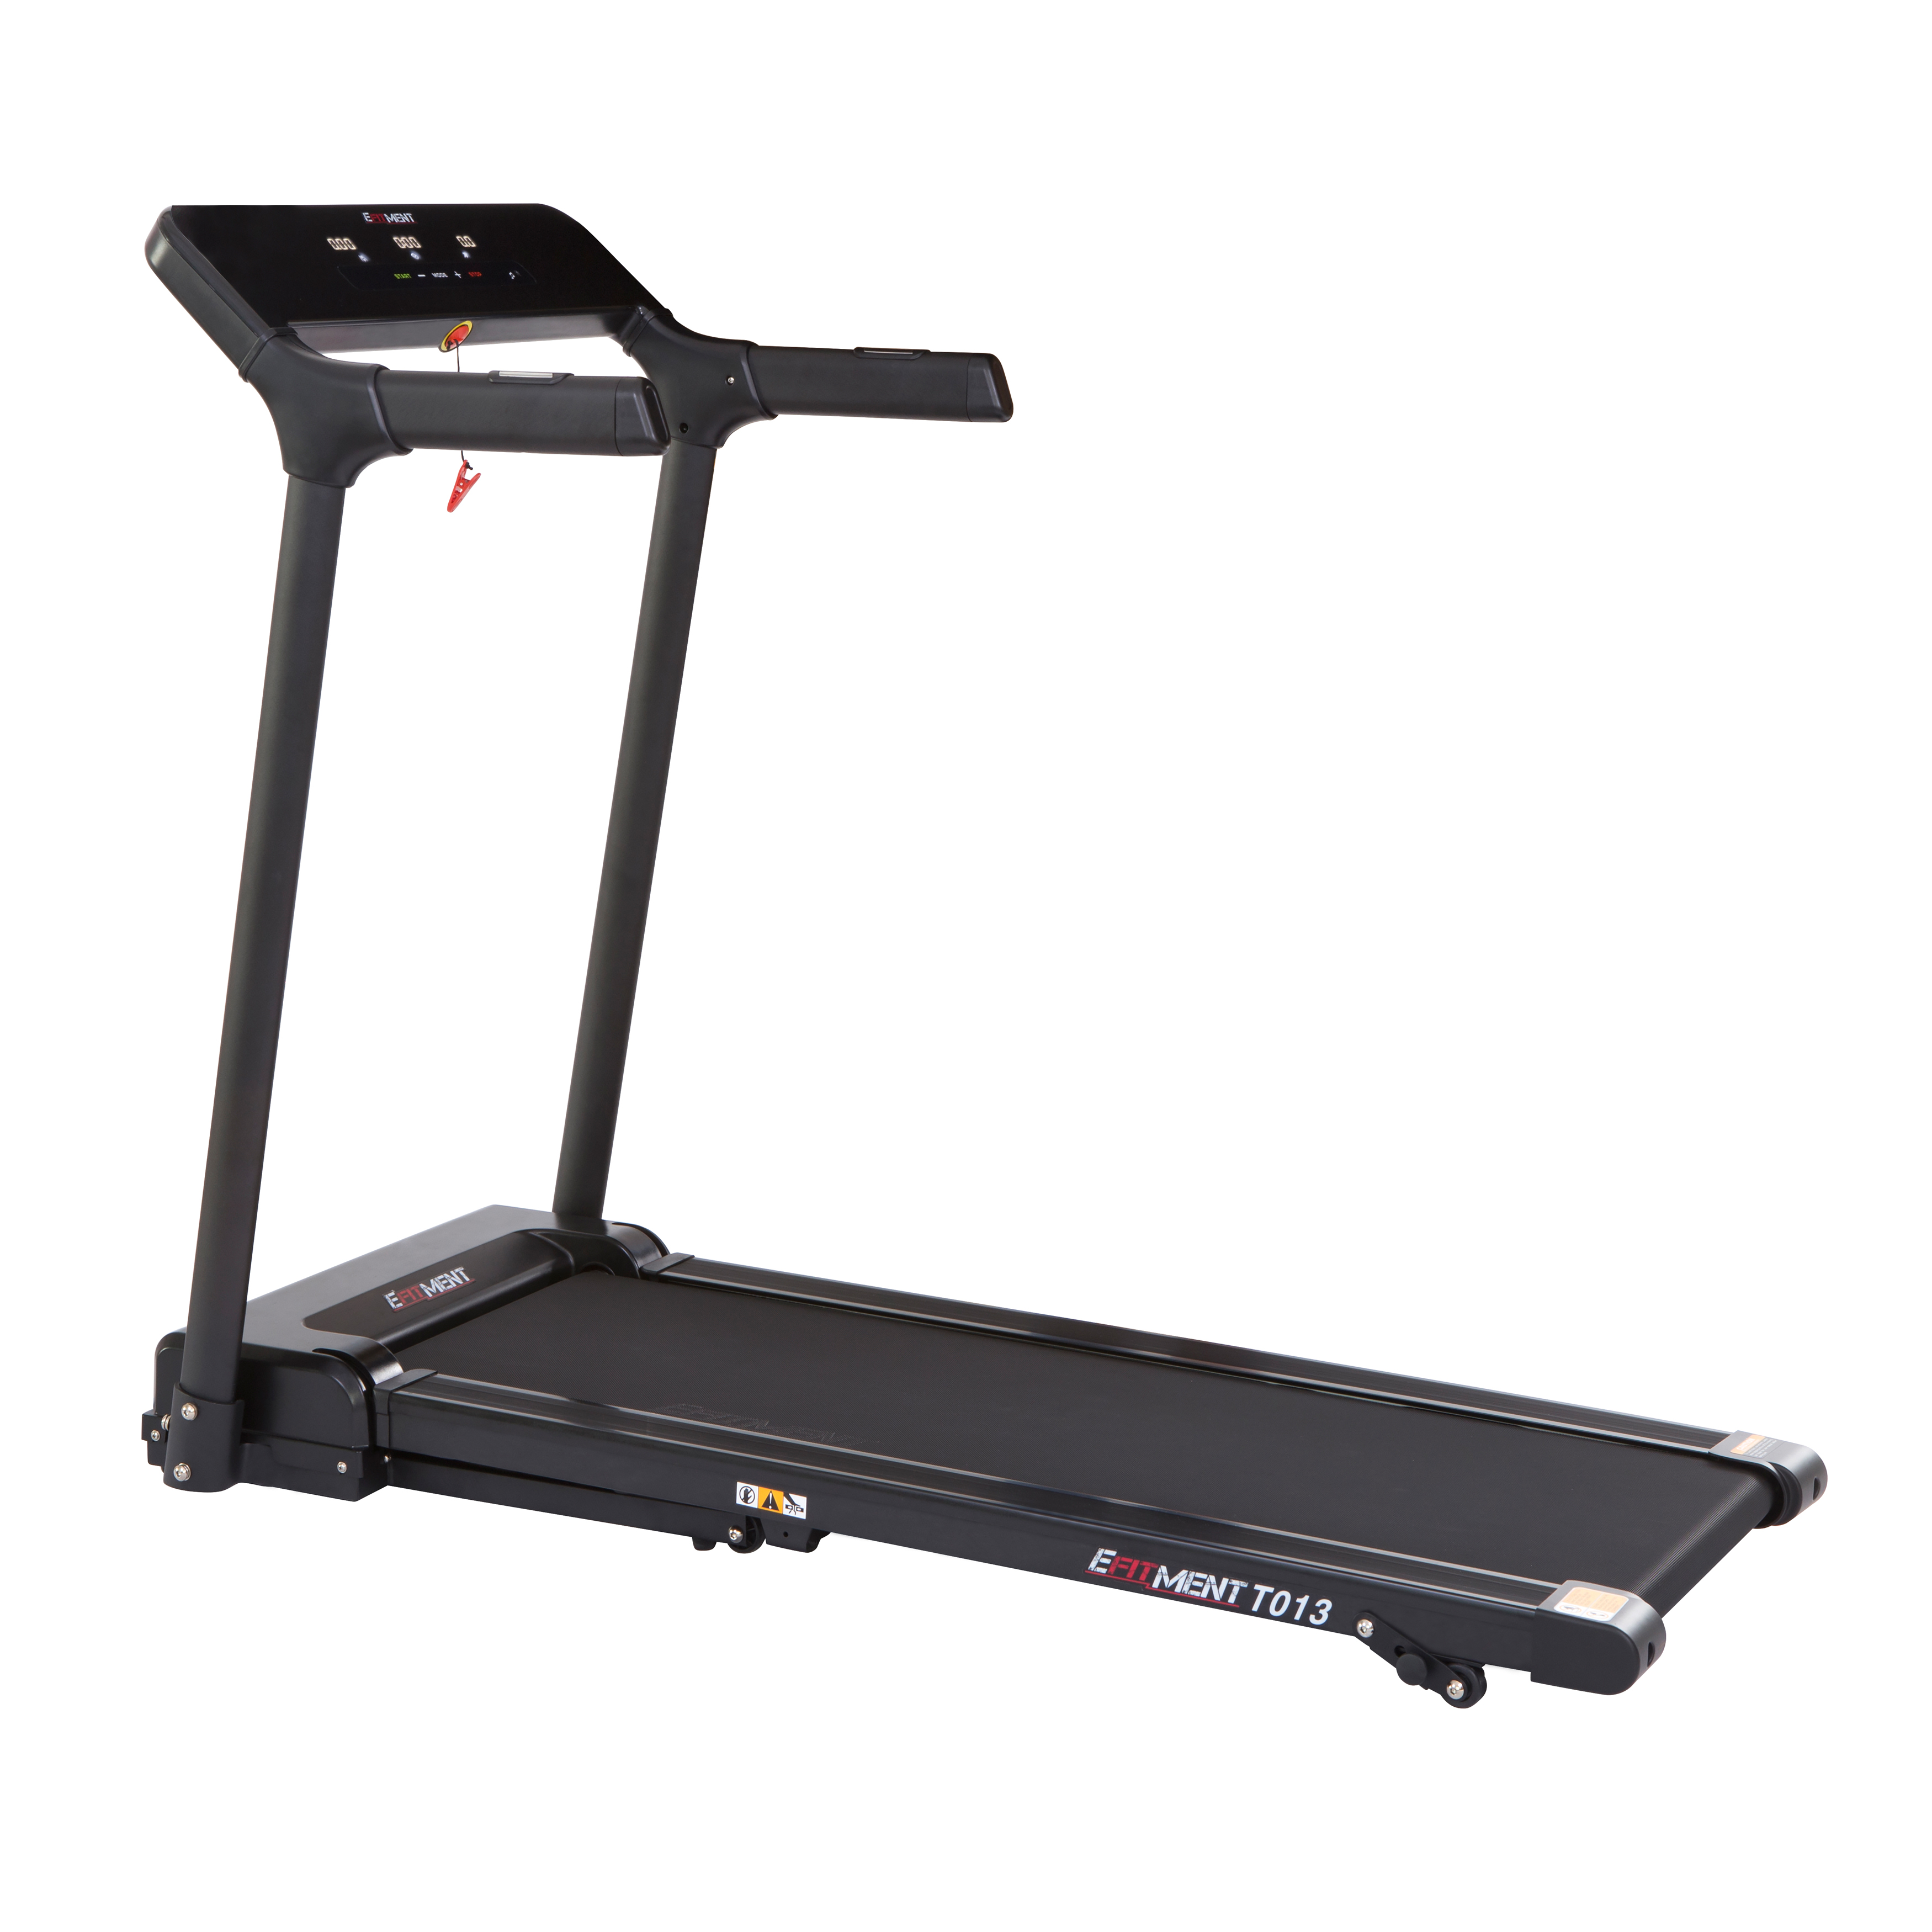 Folding Treadmill with Bluetooth and Incline by EFITMENT - T013